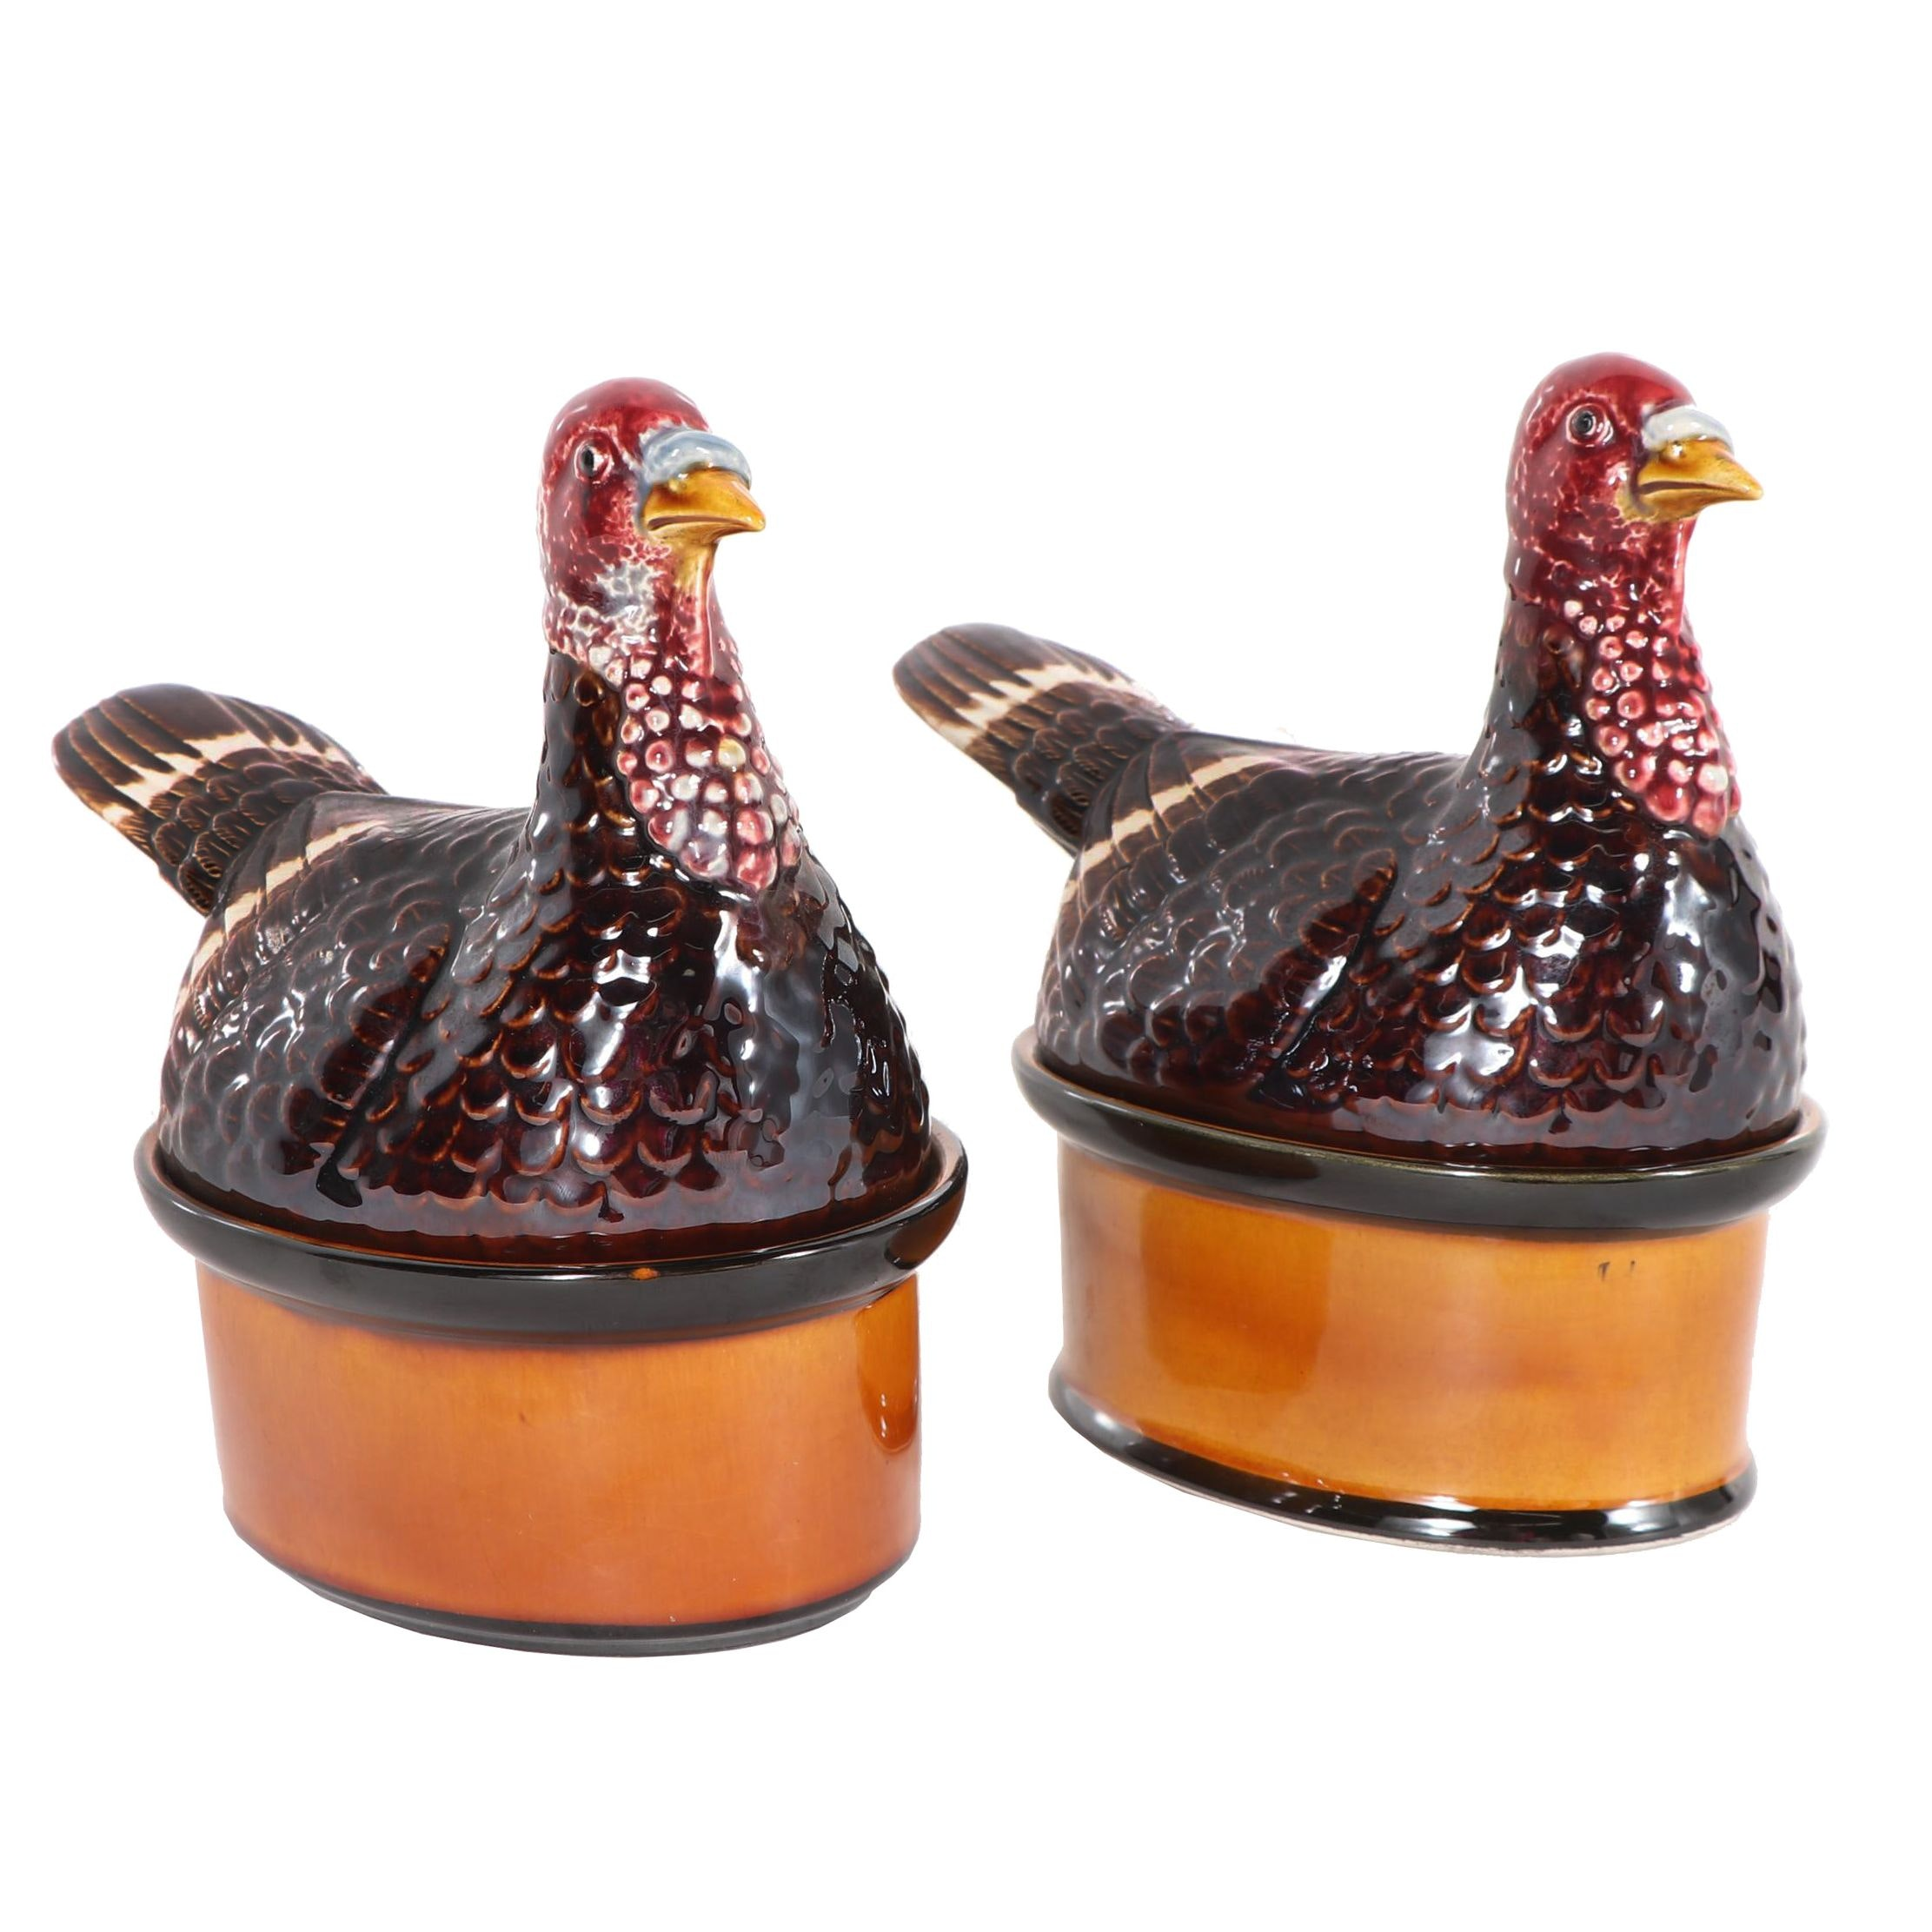 Secla Portuguese Ceramic Pheasant Covered Baking Dishes